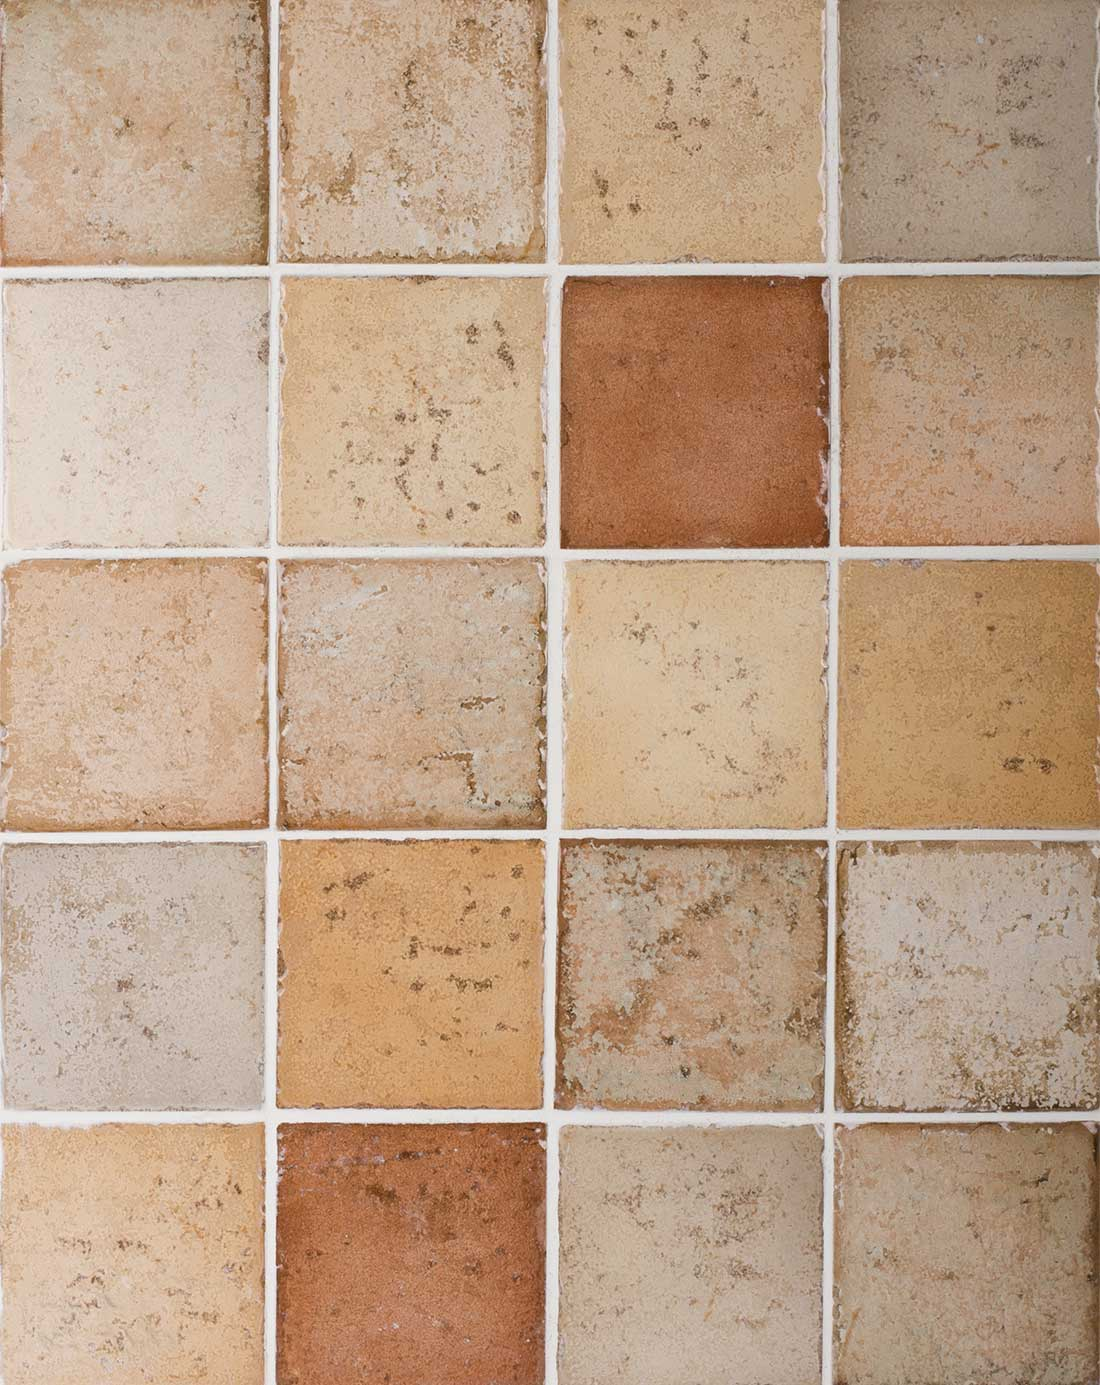 Tile samples for bathroom - Cotto Mattone Tabacco Tortora Mistral Tiles